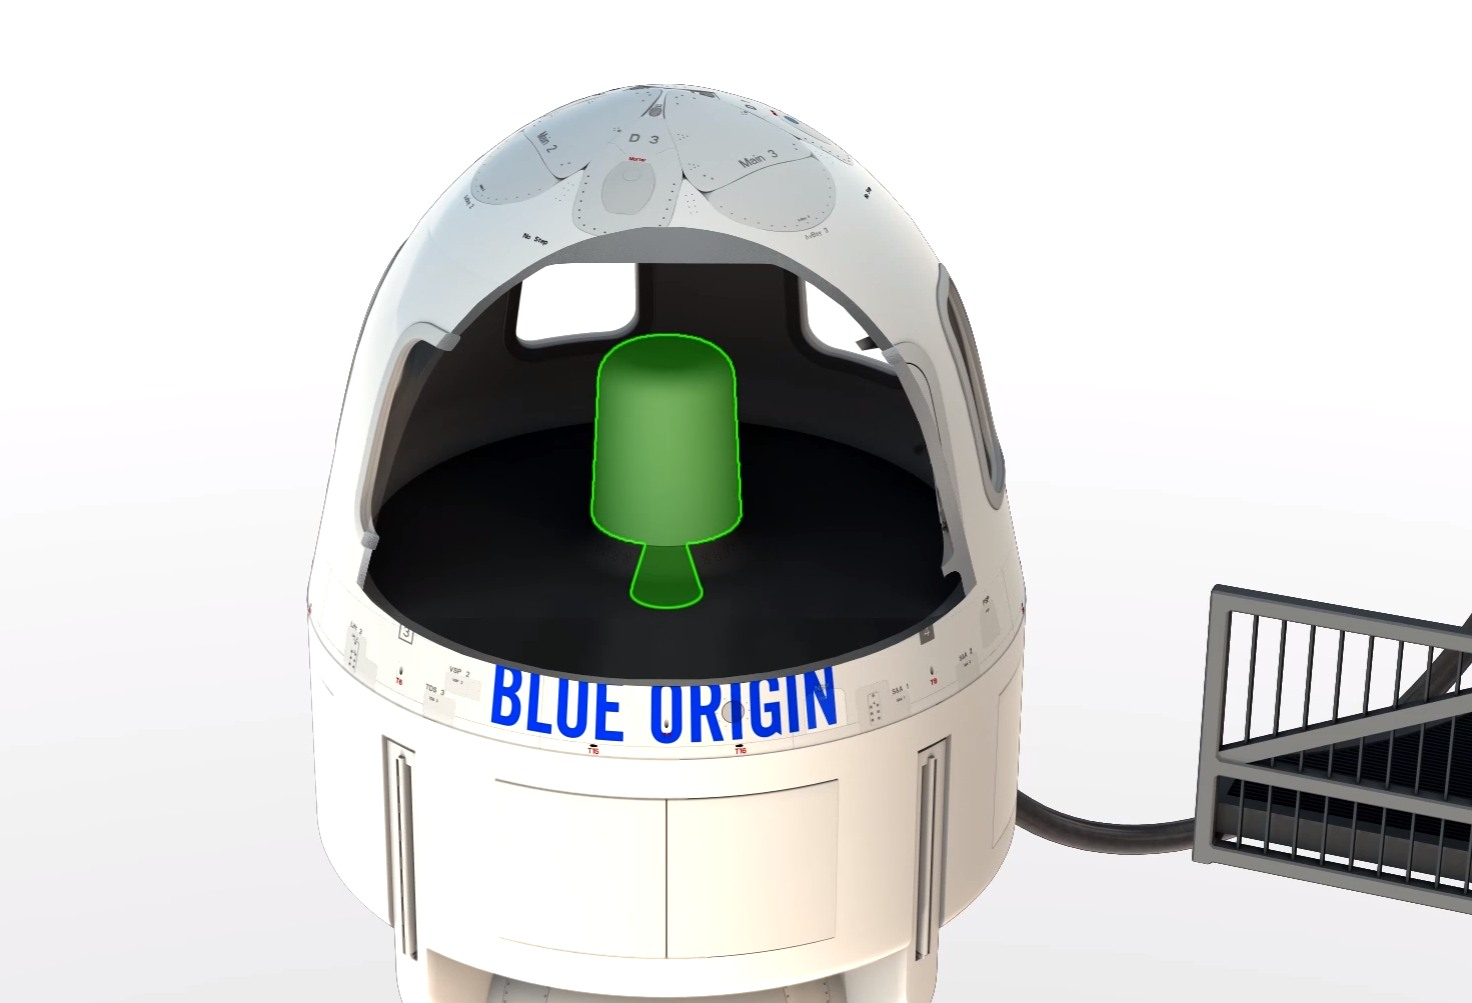 The escape motor will be mounted in the center of, and beneath, the New Shepard capsule.